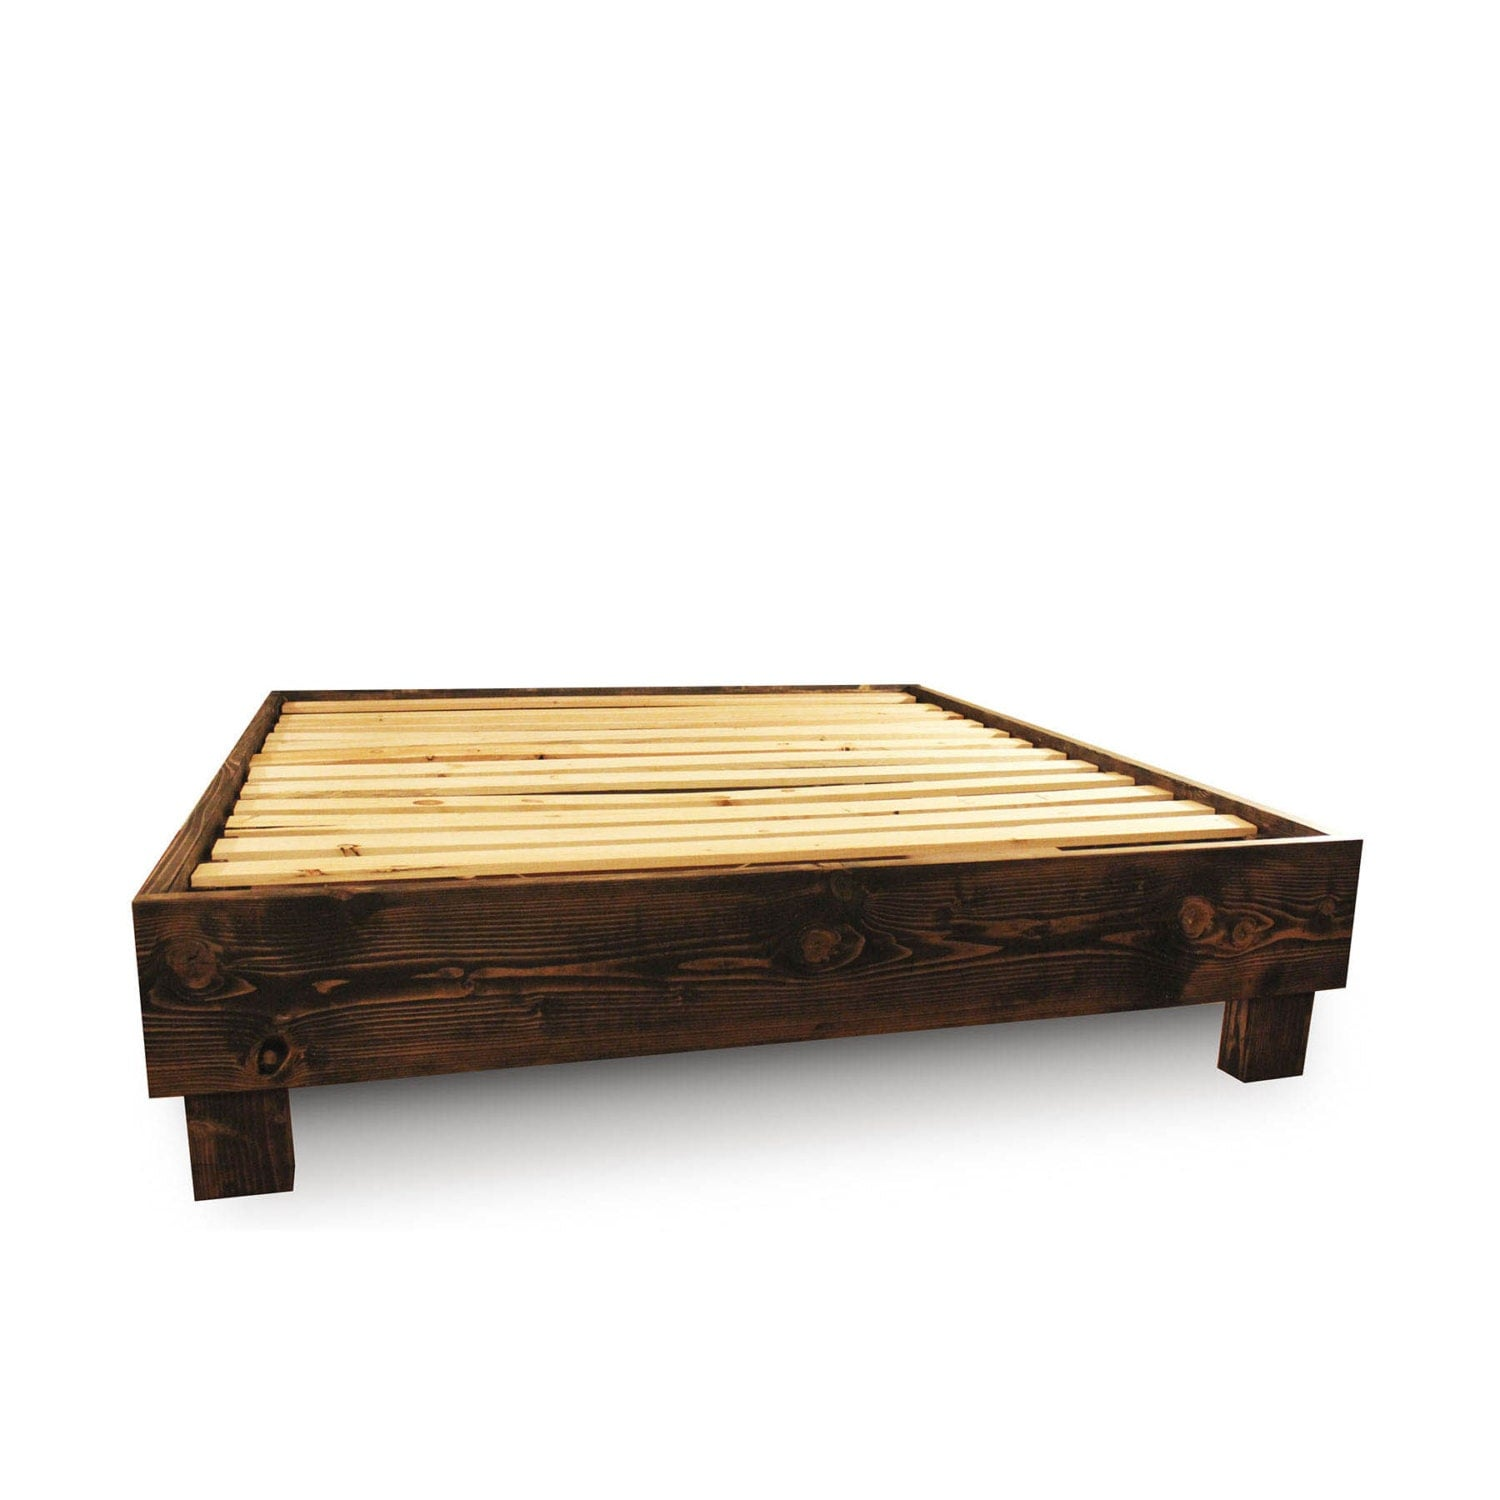 Rustic platform bed frame old world reclaimed wood style Rustic bed frames